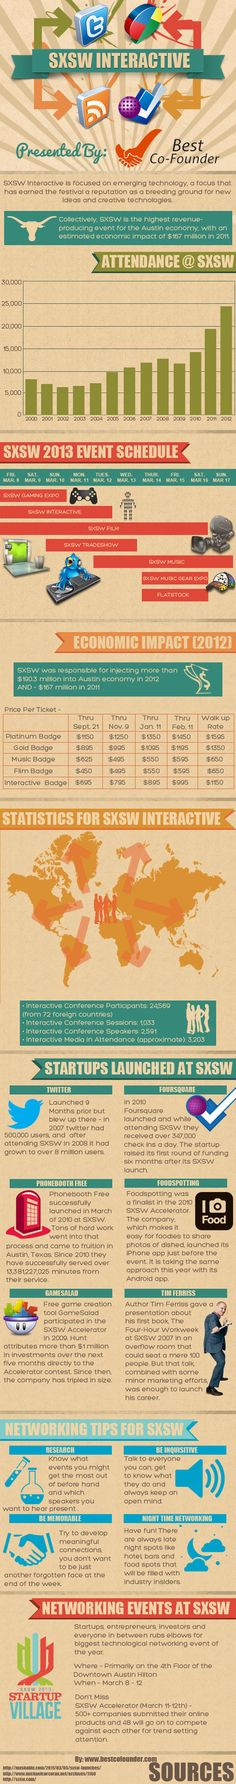 SXSW Interactive one of the largest conference/festivals in the entire world.